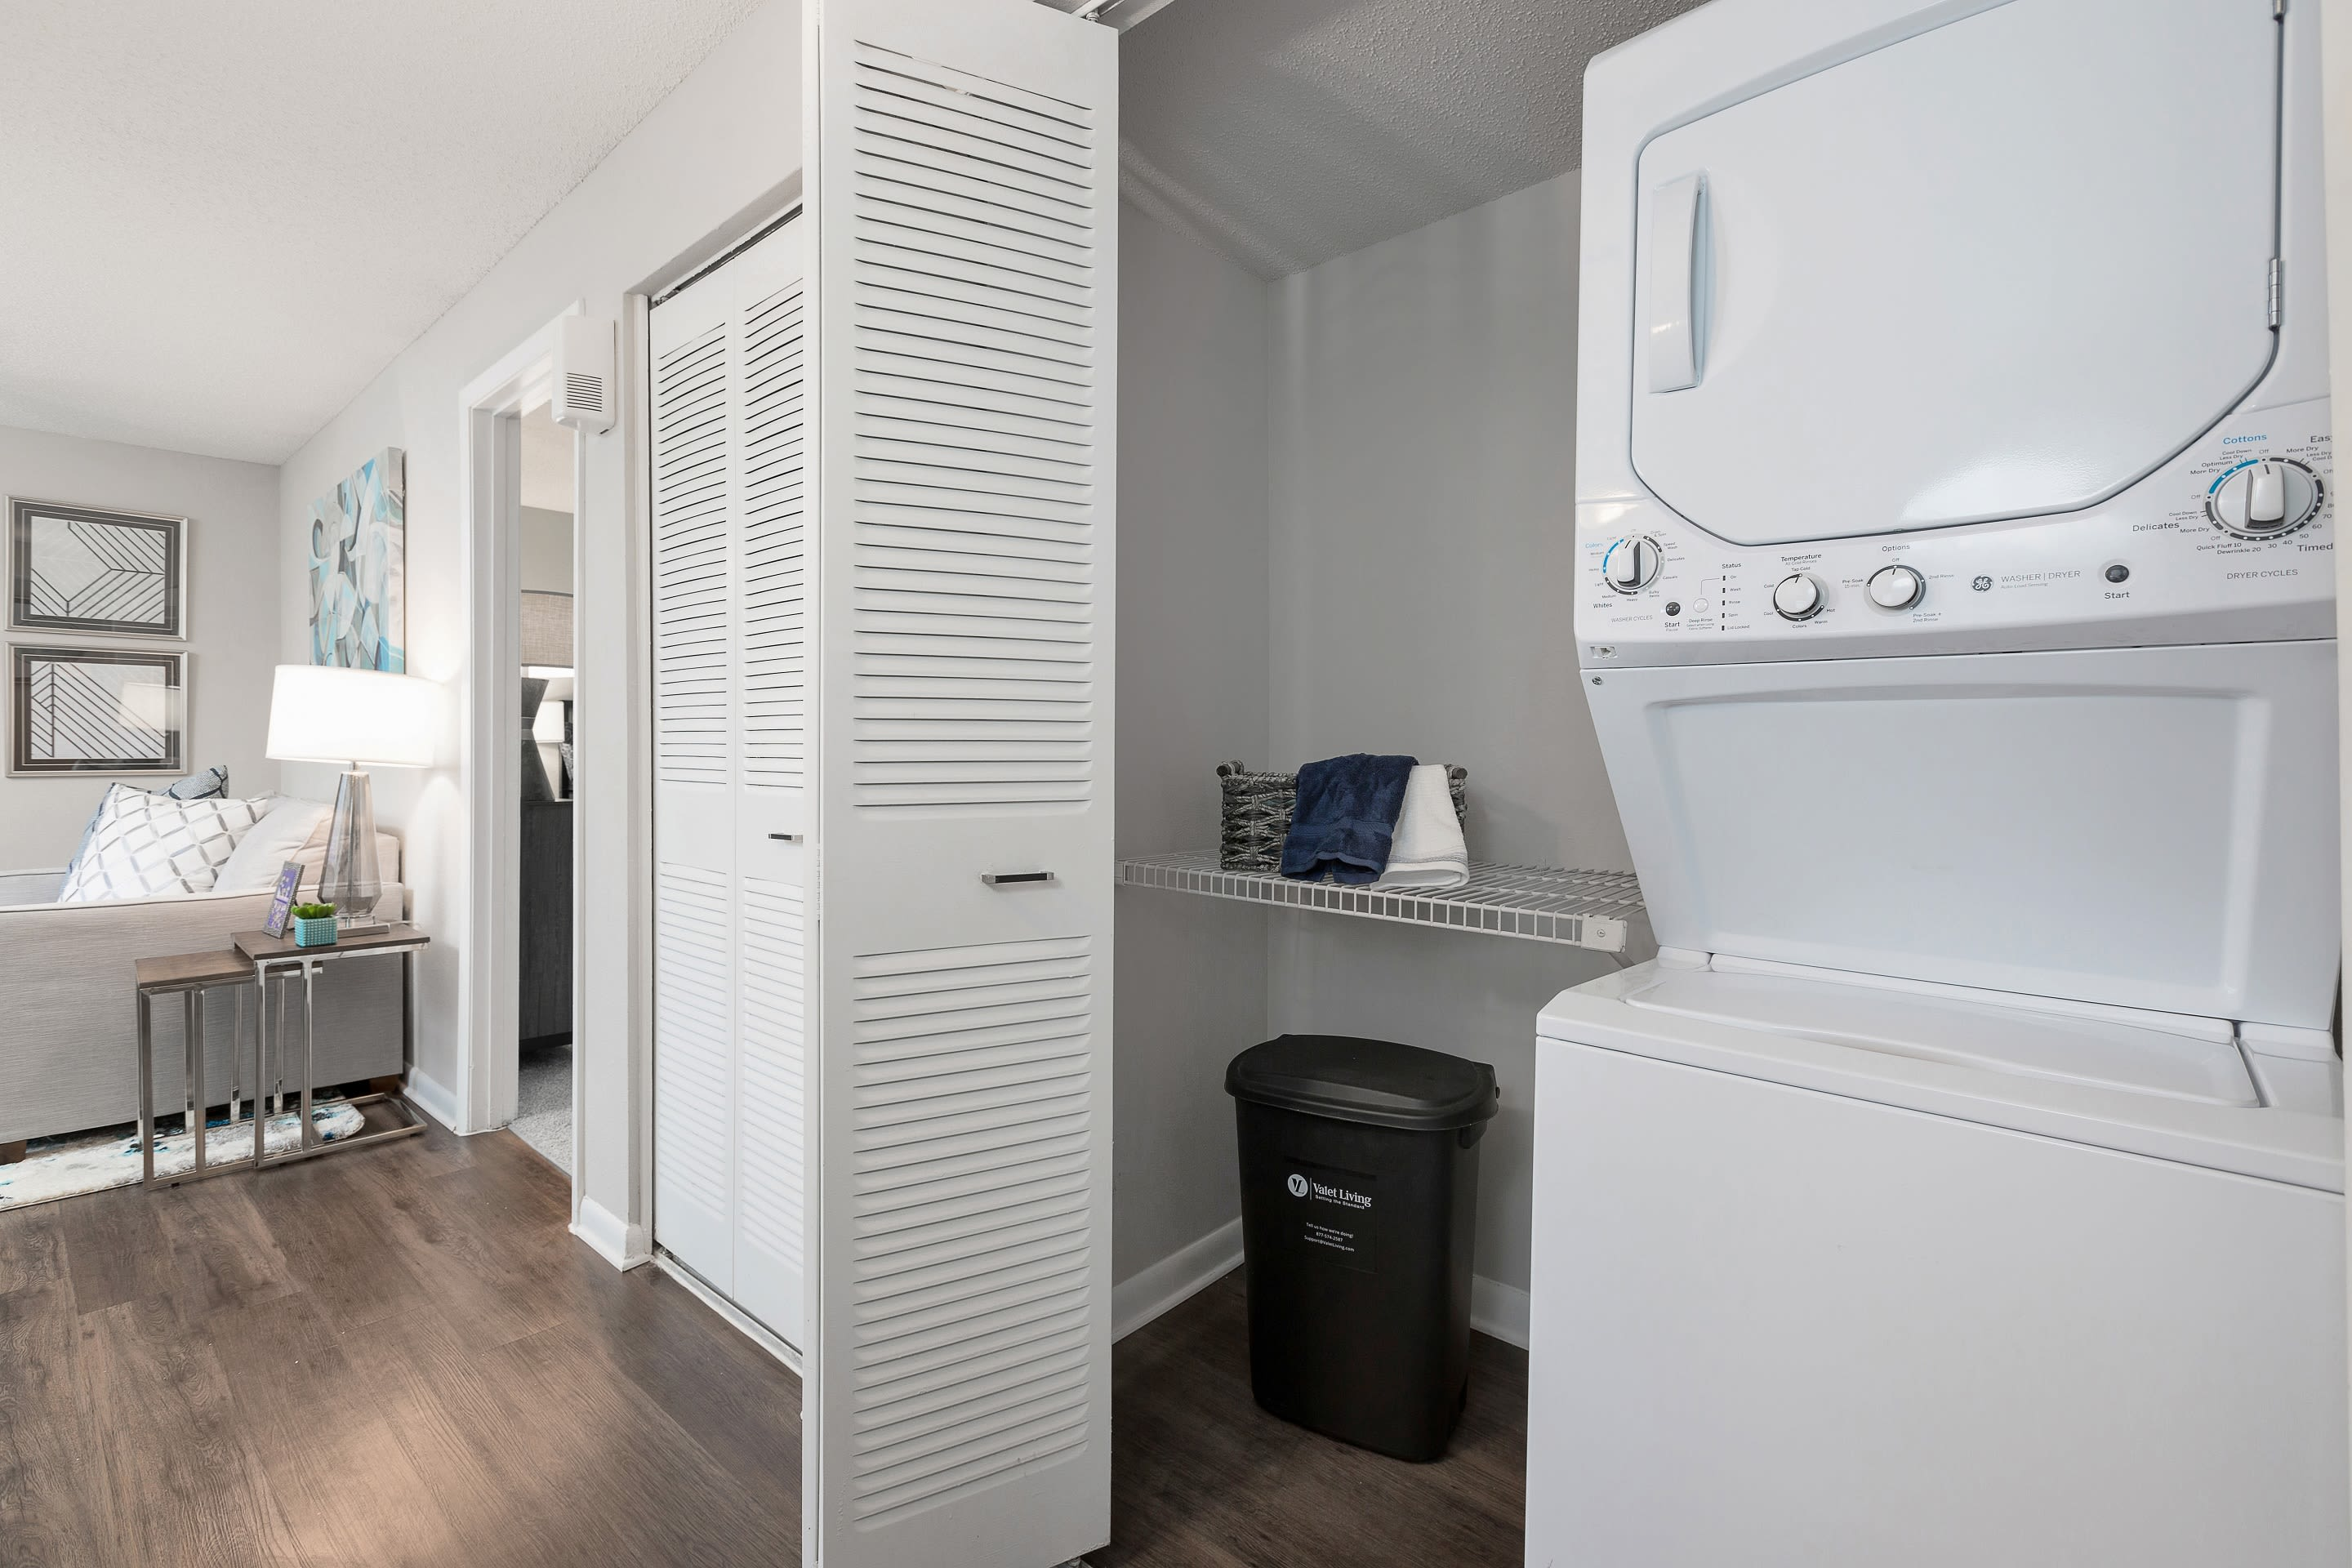 Onsite washers and dryers for residents at WestEnd At 76Ten in Tampa, Florida